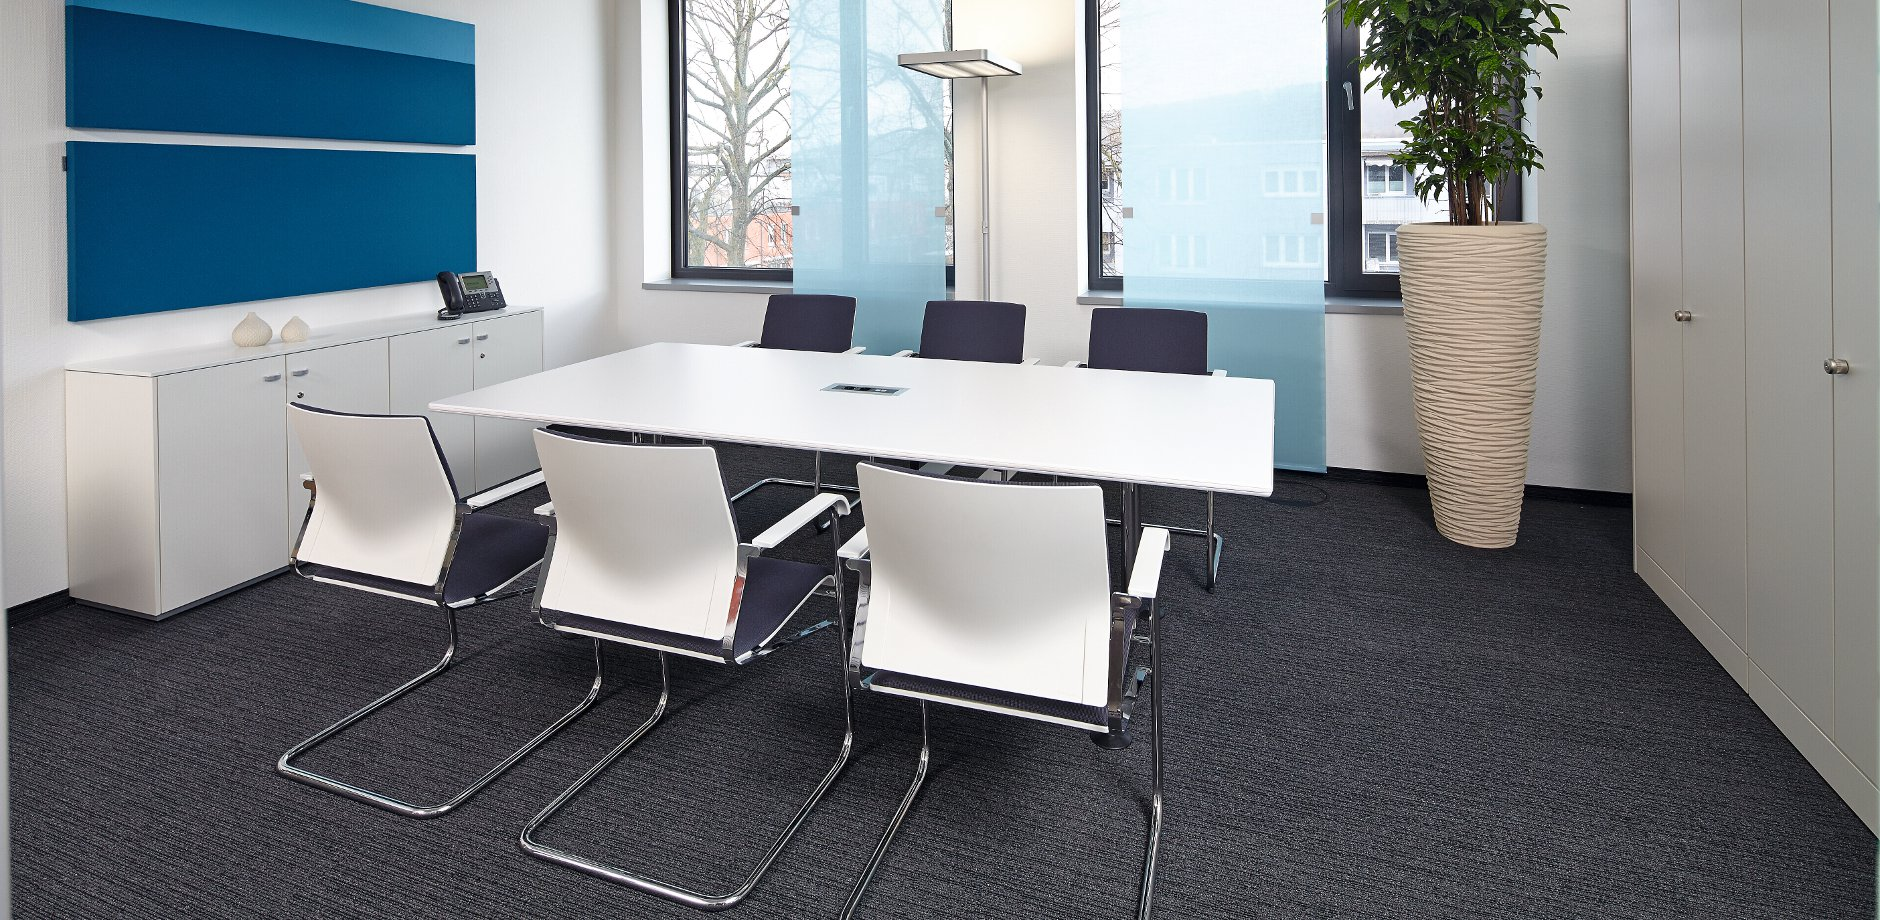 Ipsen Pharma, Germany, Sito cantilever chair and Logon conference table by Wilkhahn